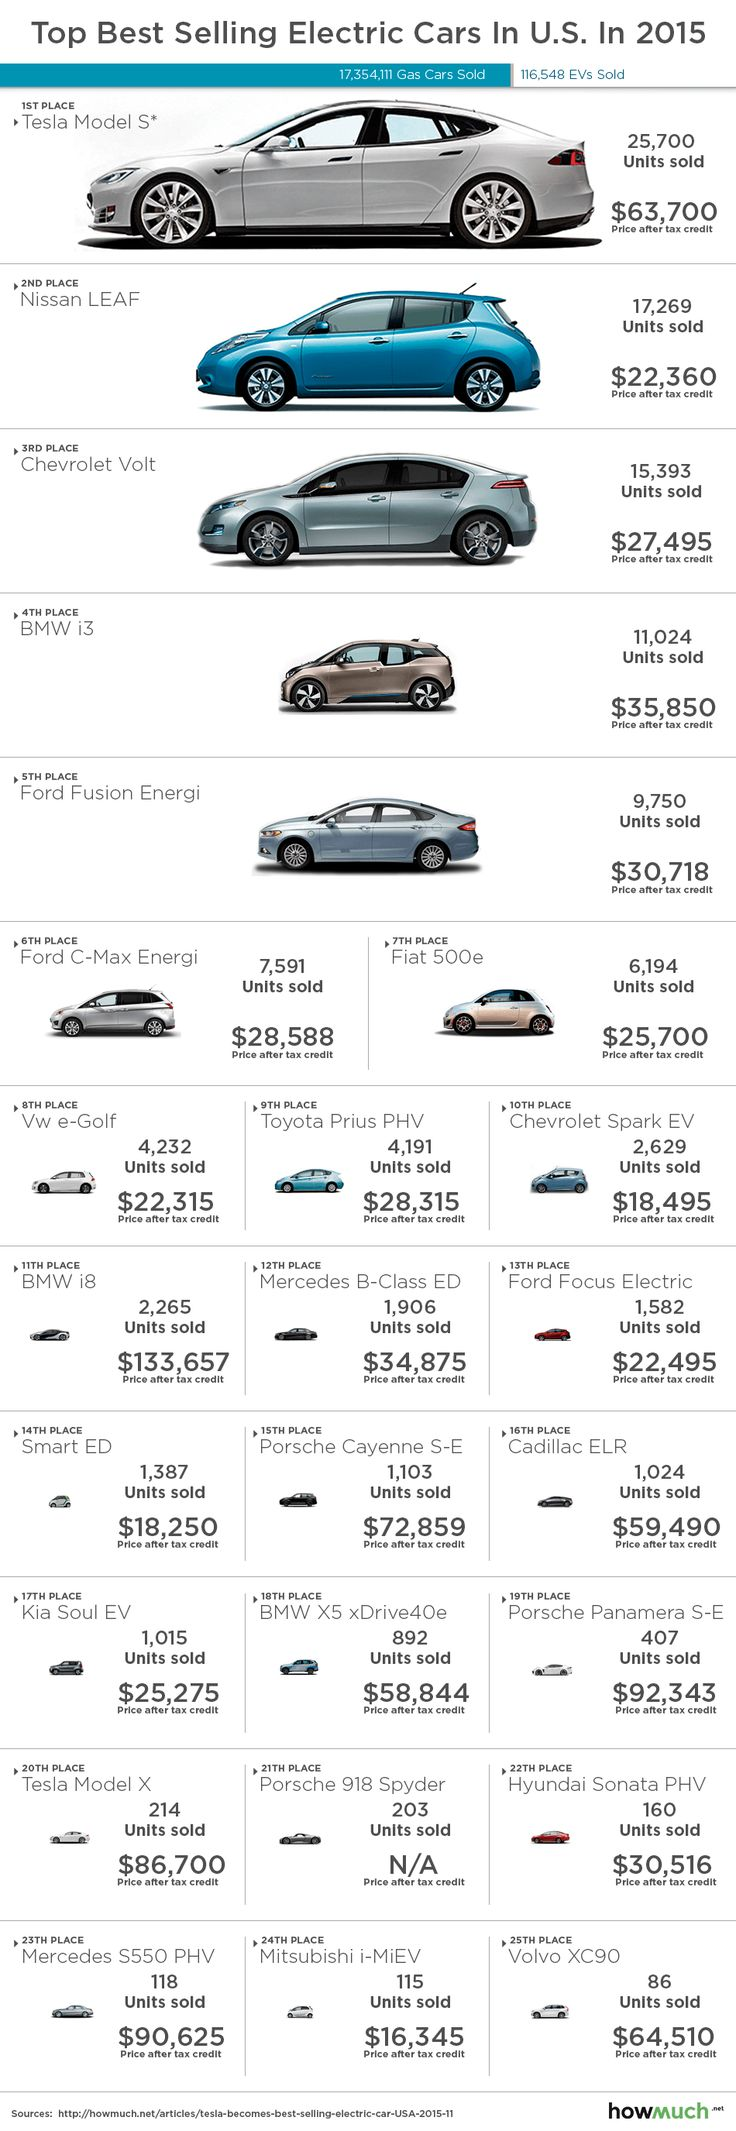 Tesla Model S Becomes The Best Selling Electric Car in U.S. in 2015